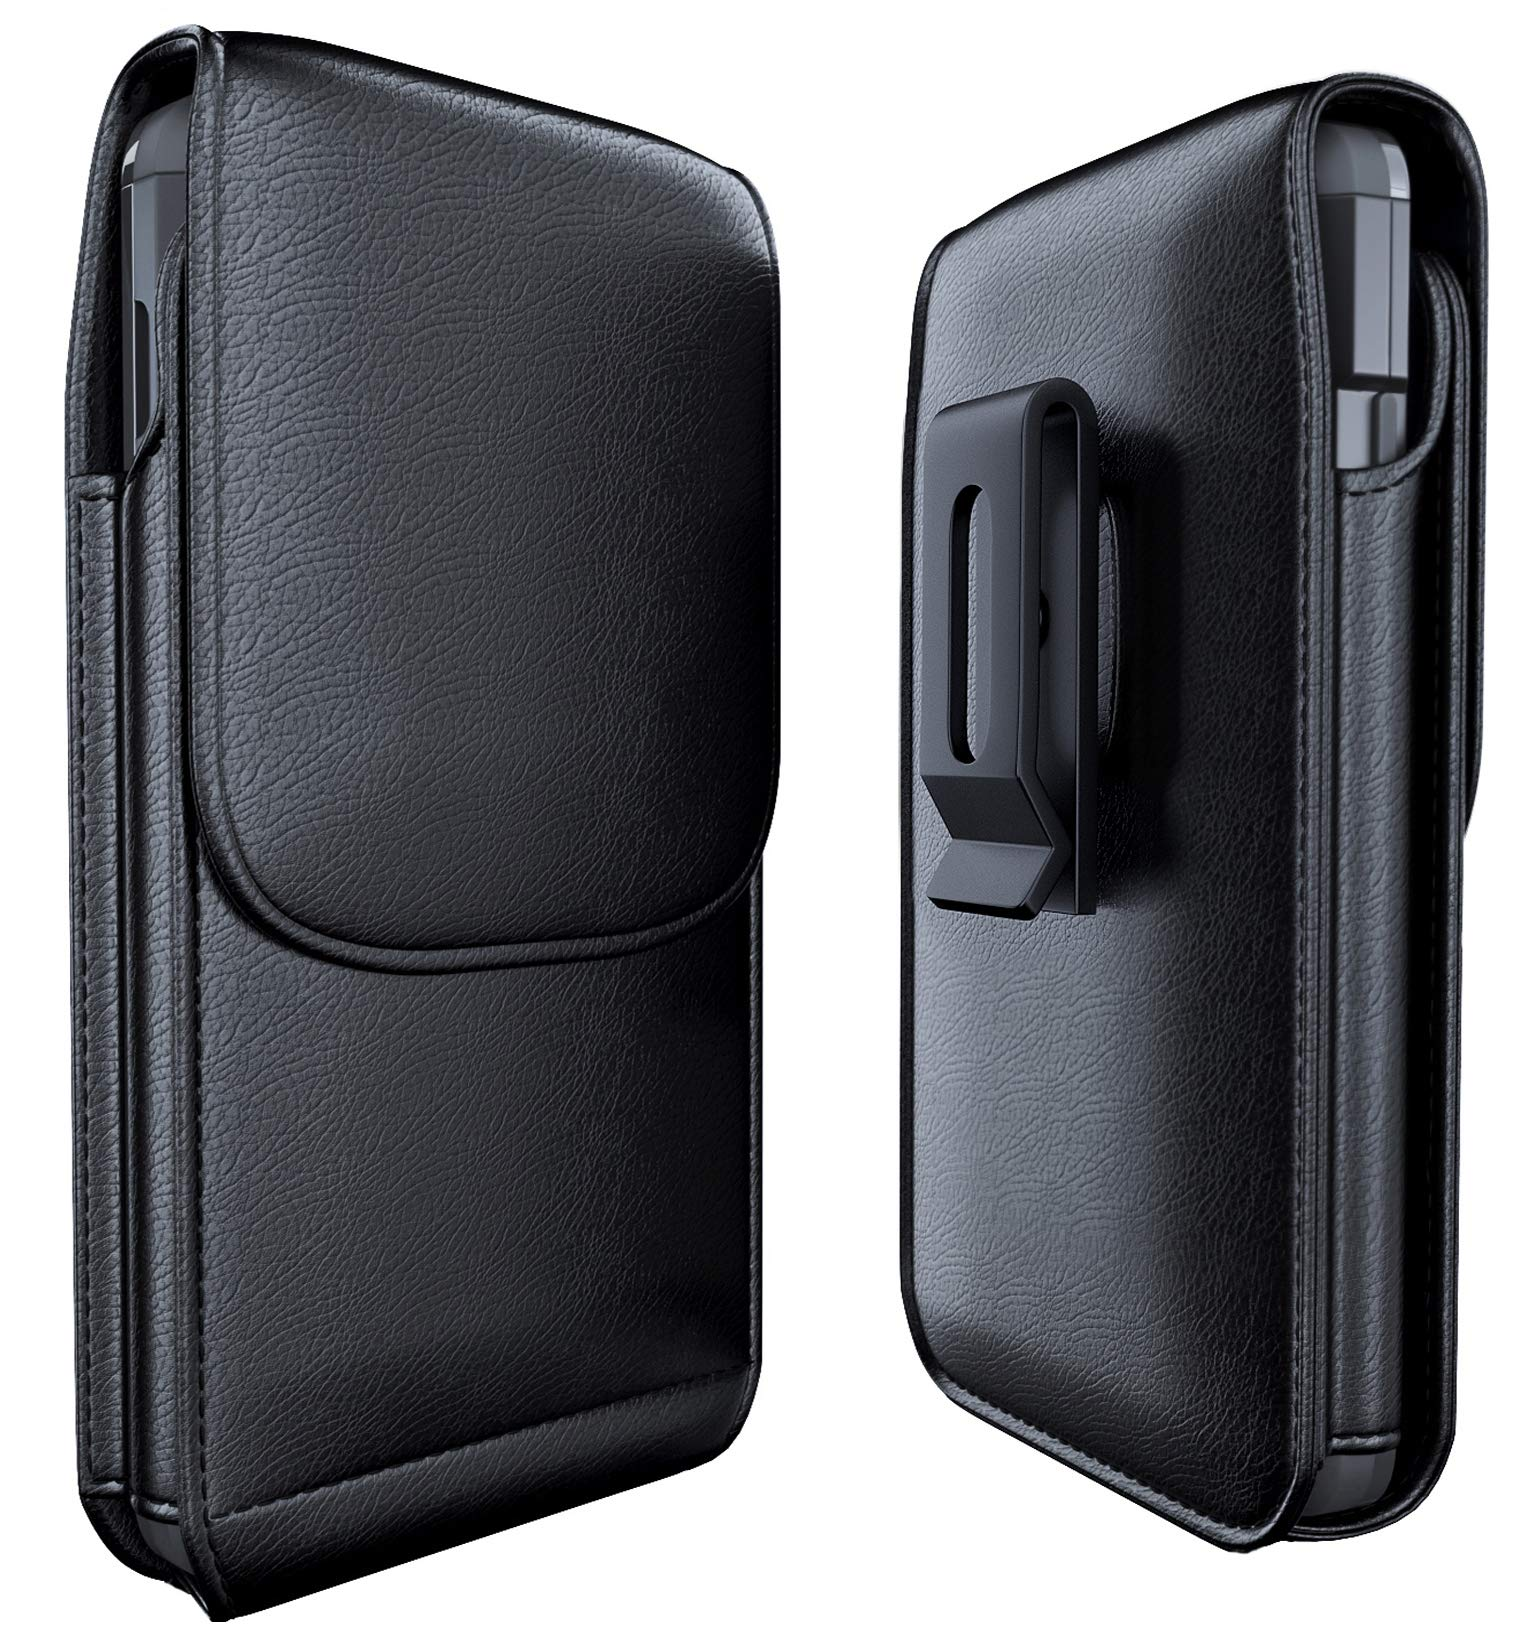 A50 A70 Note 10 PLUS Note 9 Note 10 5G Agoz For Samsung Galaxy Note 8 Rugged Belt Clip Case Cover Holster Pouch With Metal Clip S20 ULTRA S10 5G Front Buckle Belt Loops,Card Pocket S20 Plus